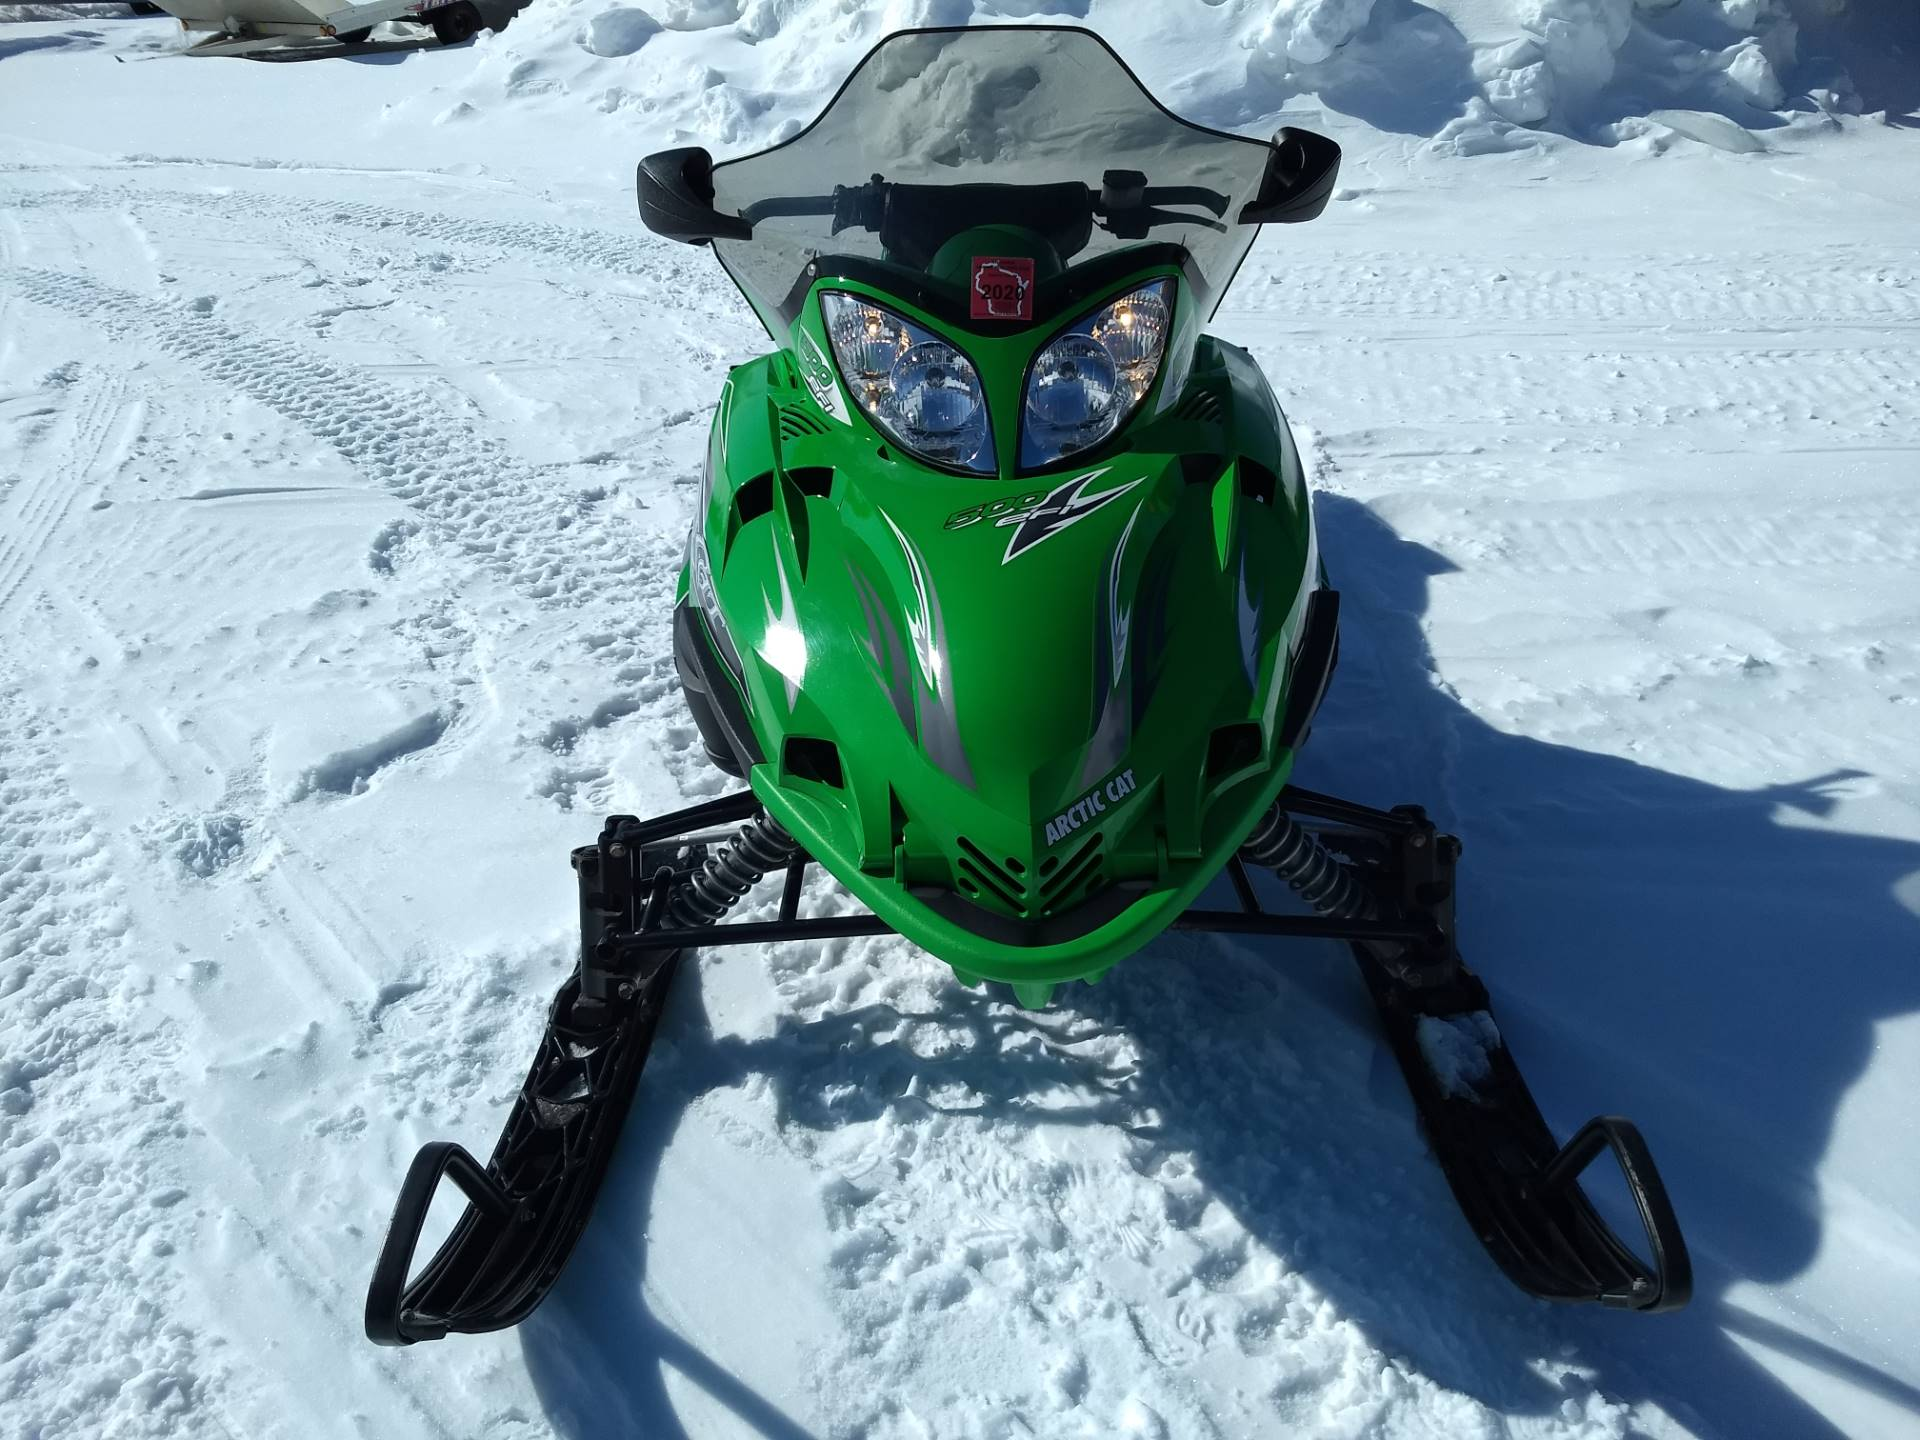 2006 Arctic Cat Trail Performance Sabercat 500 EFI LX in Three Lakes, Wisconsin - Photo 2